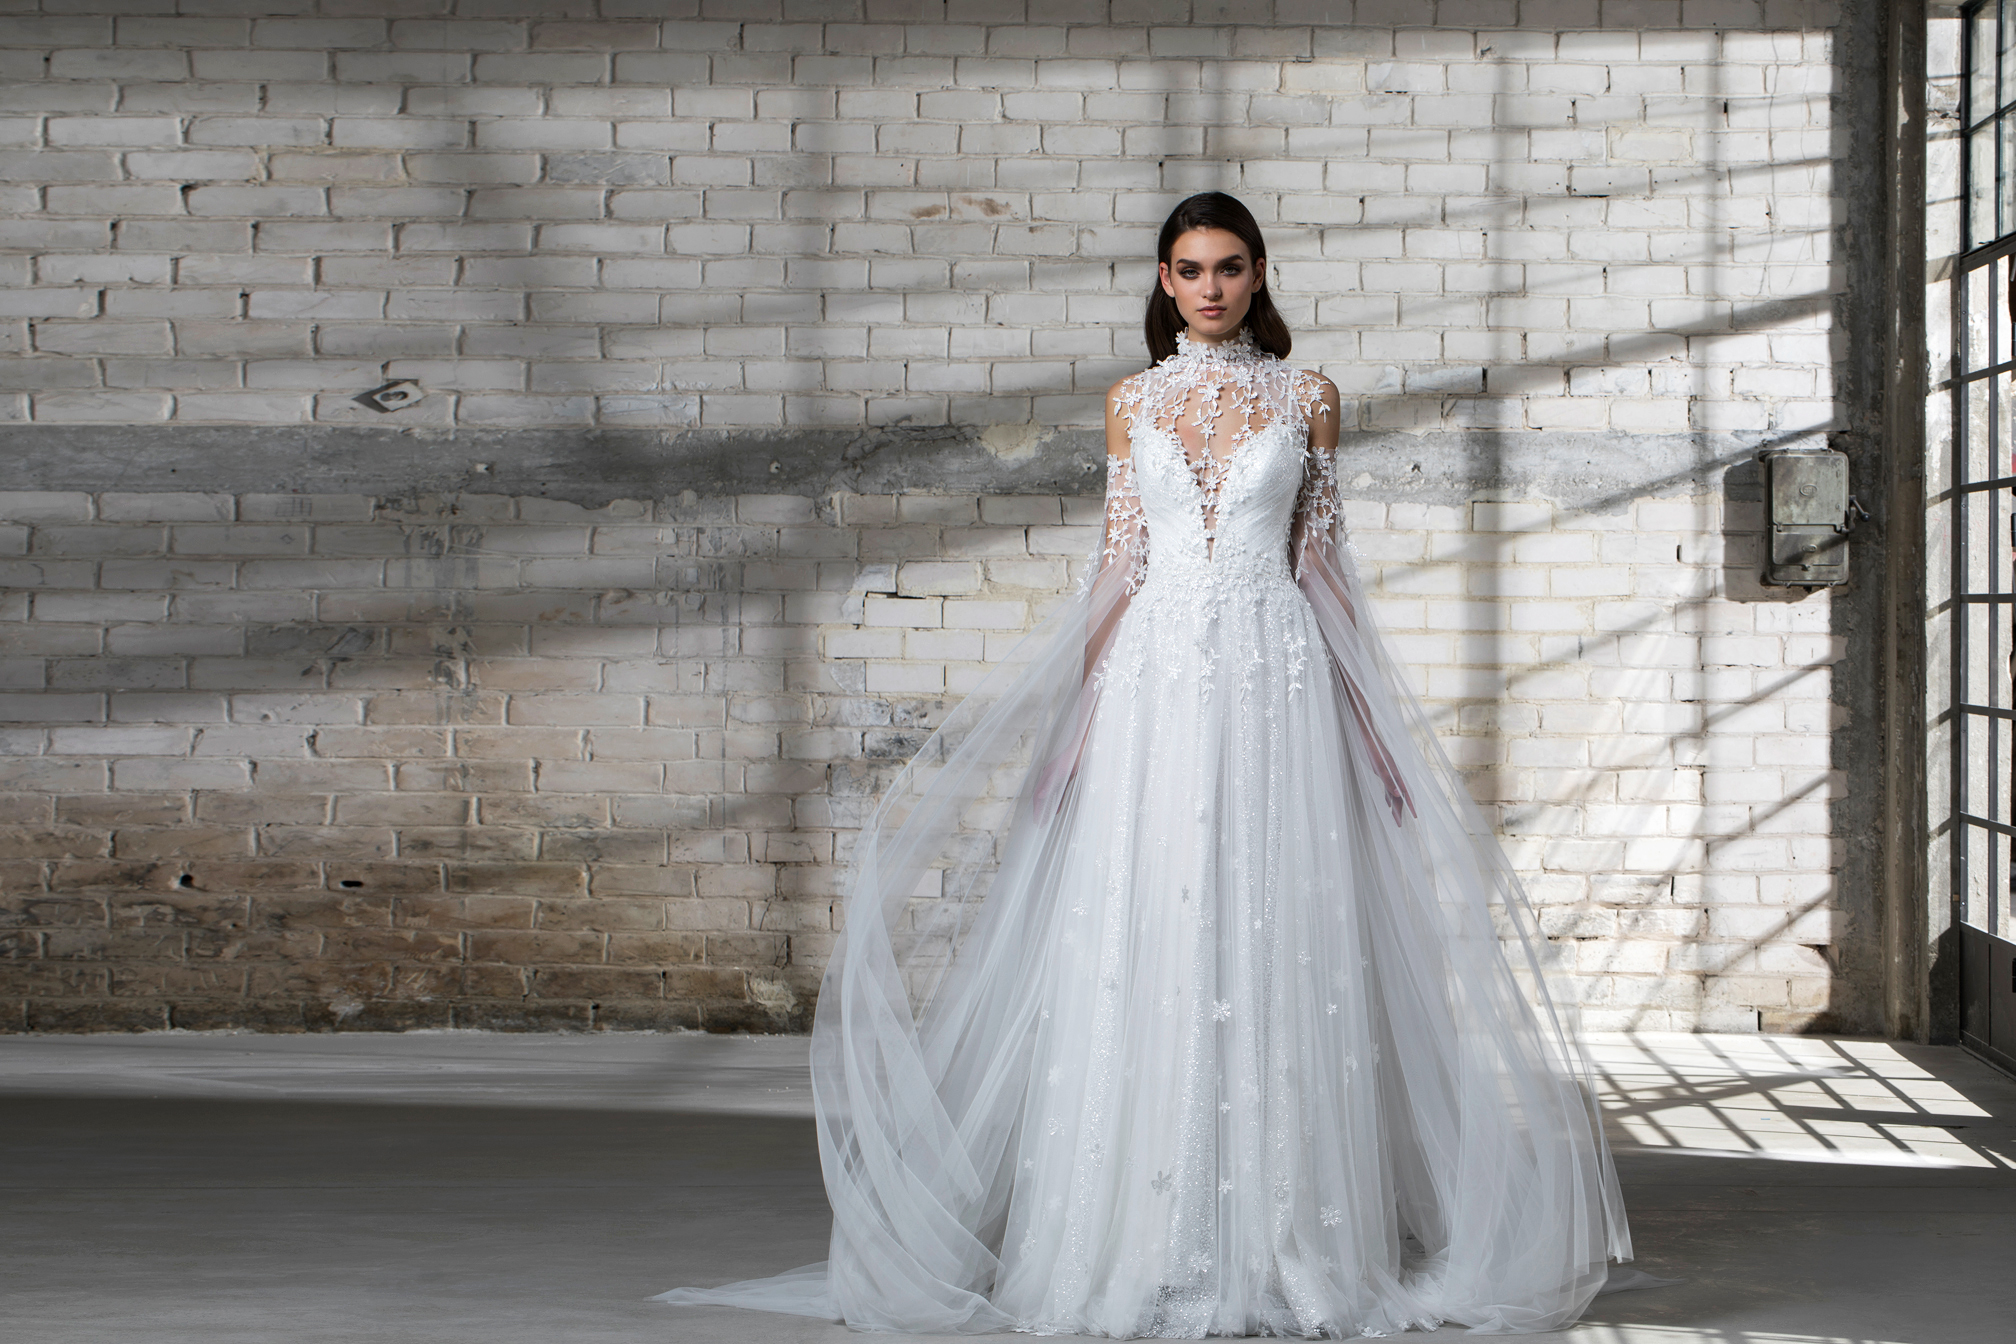 pnina tornai wedding dress spring 2019 a-line tulle long sleeves